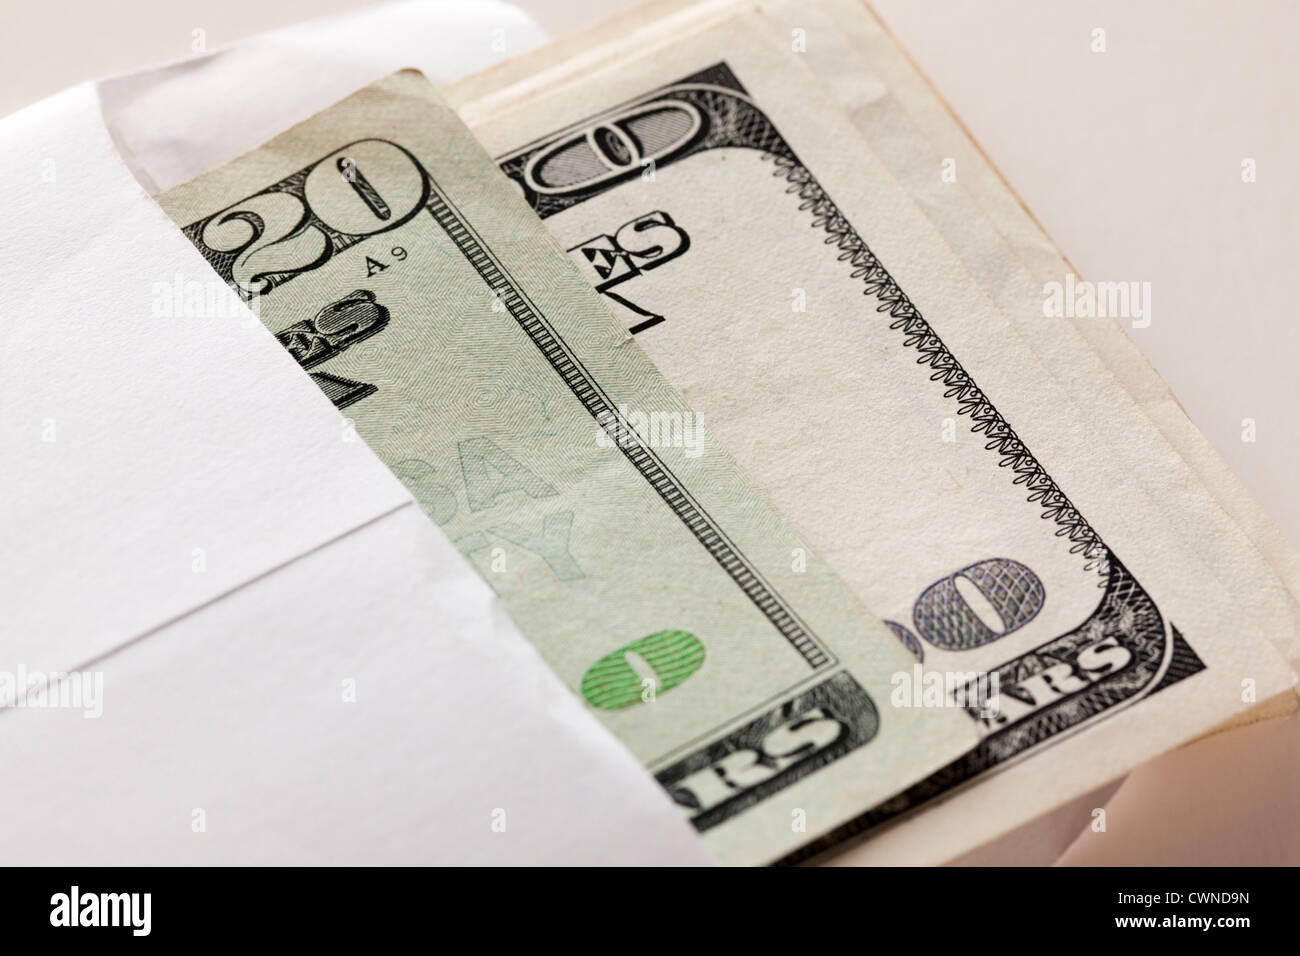 Money in an envelope - Stock Image